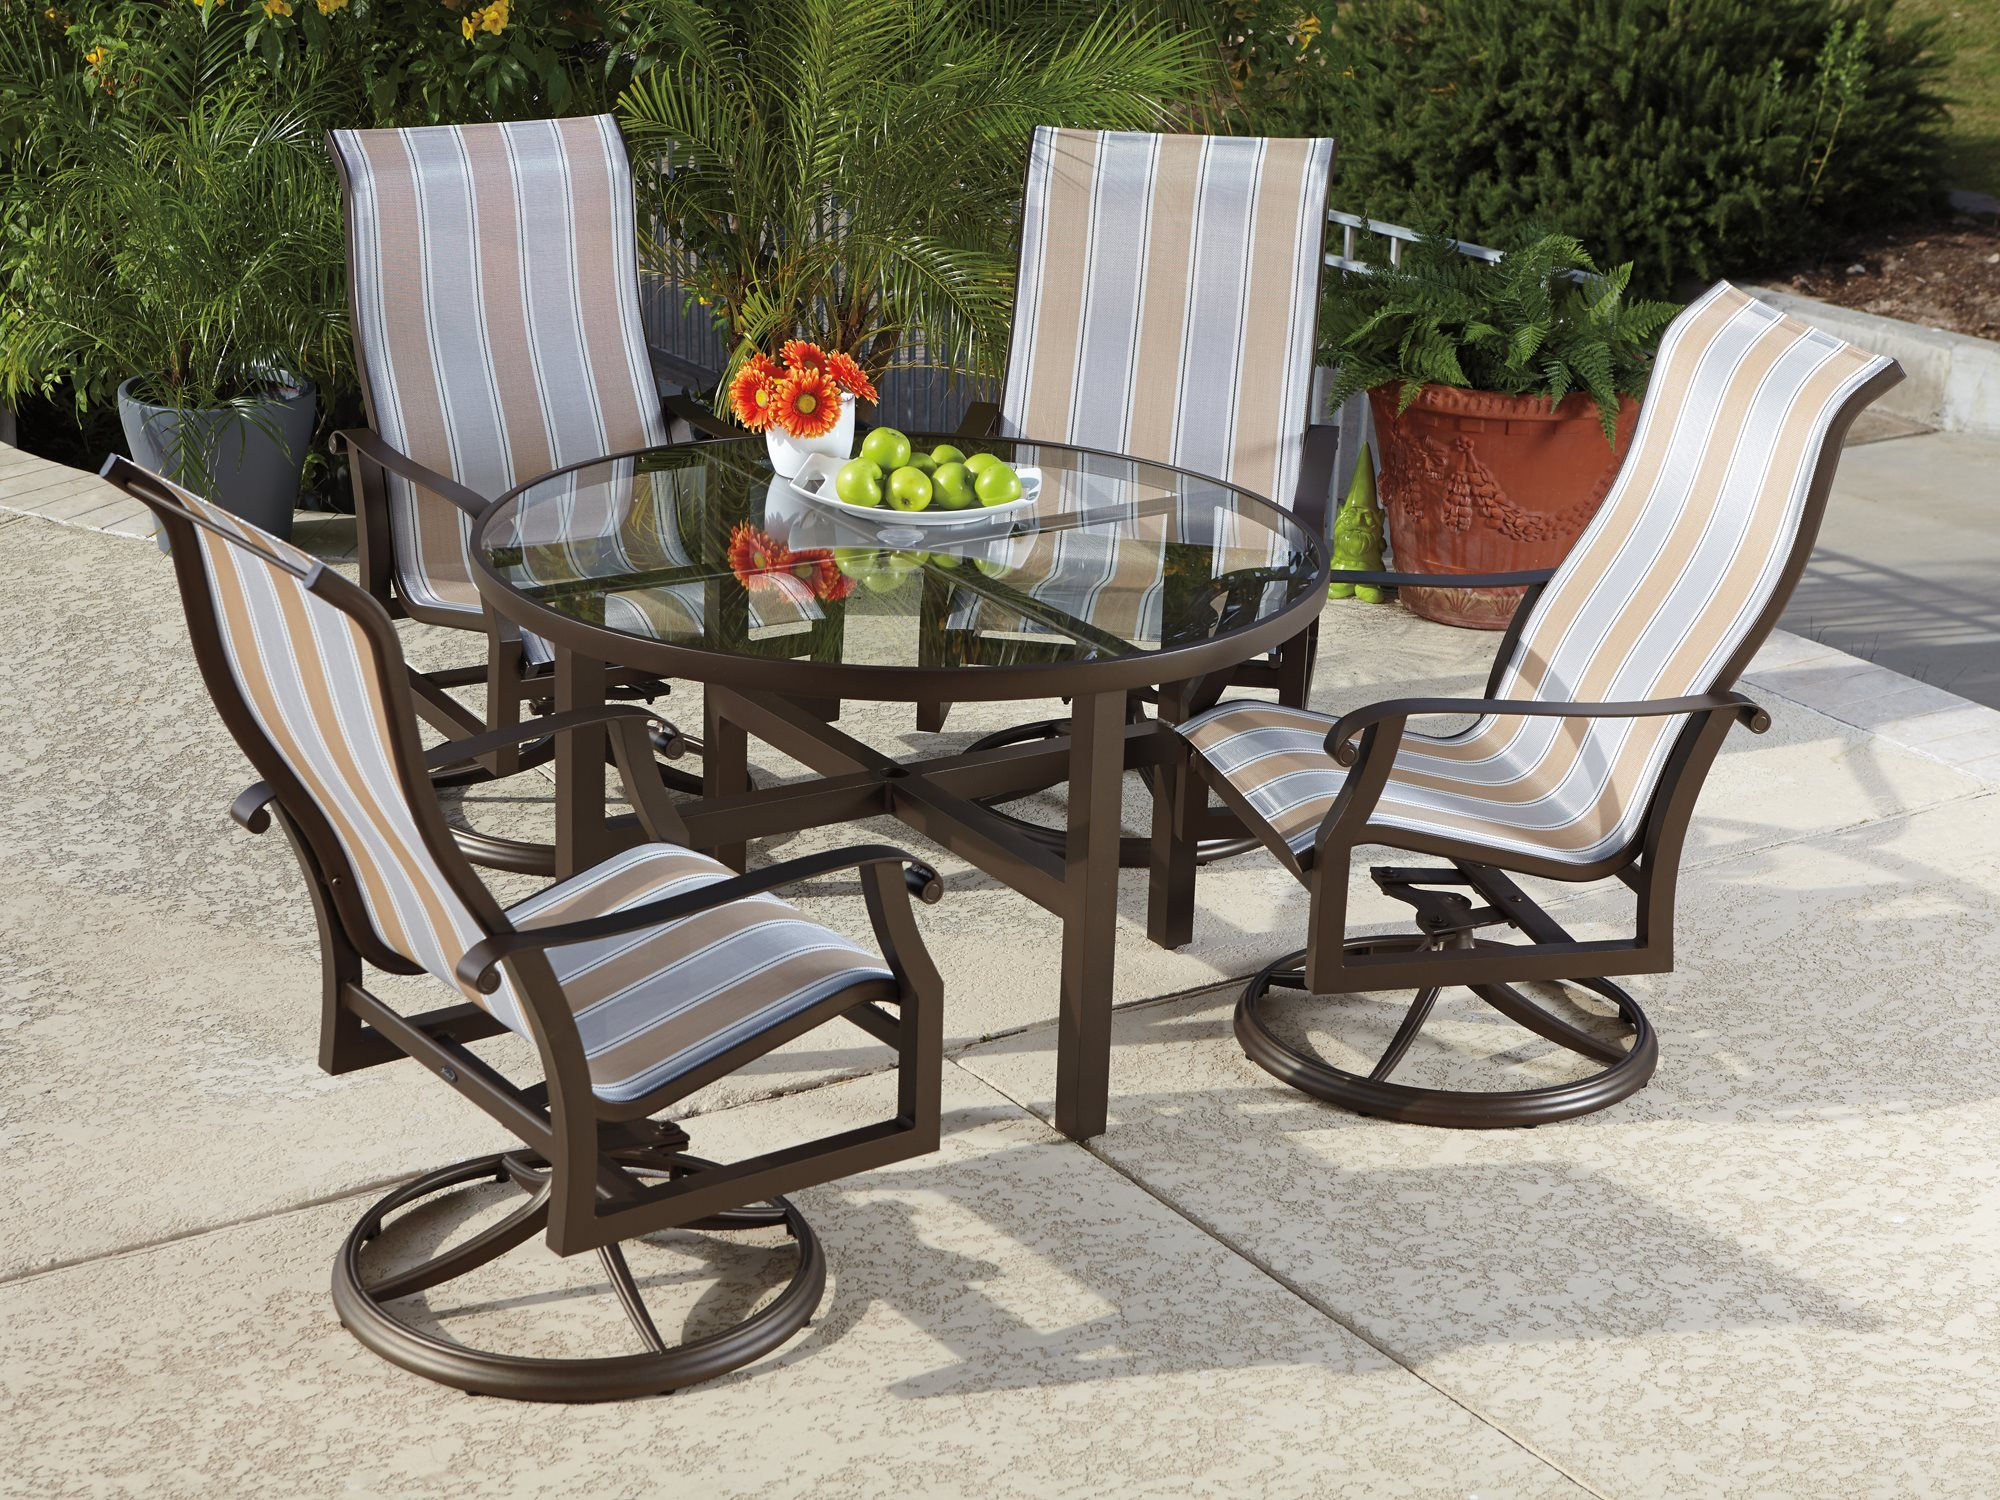 Woodard Cortland Sling Aluminum Dining Set | COURTDINSET11 ... on Living Accents Cortland Patio Set id=91455